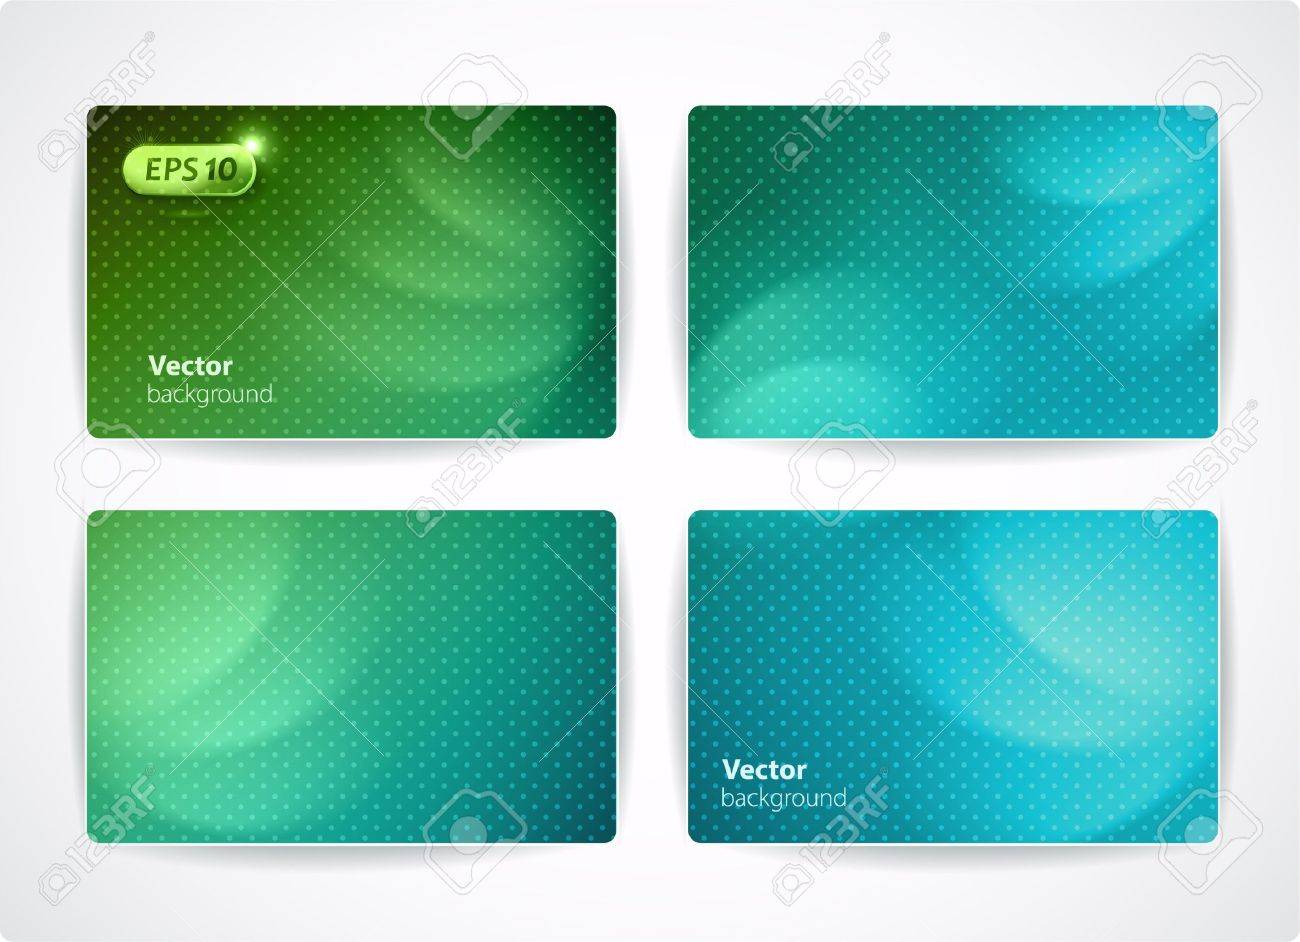 Set Of Vector Business Cards Credit Or Discount Cards Royalty Free ...